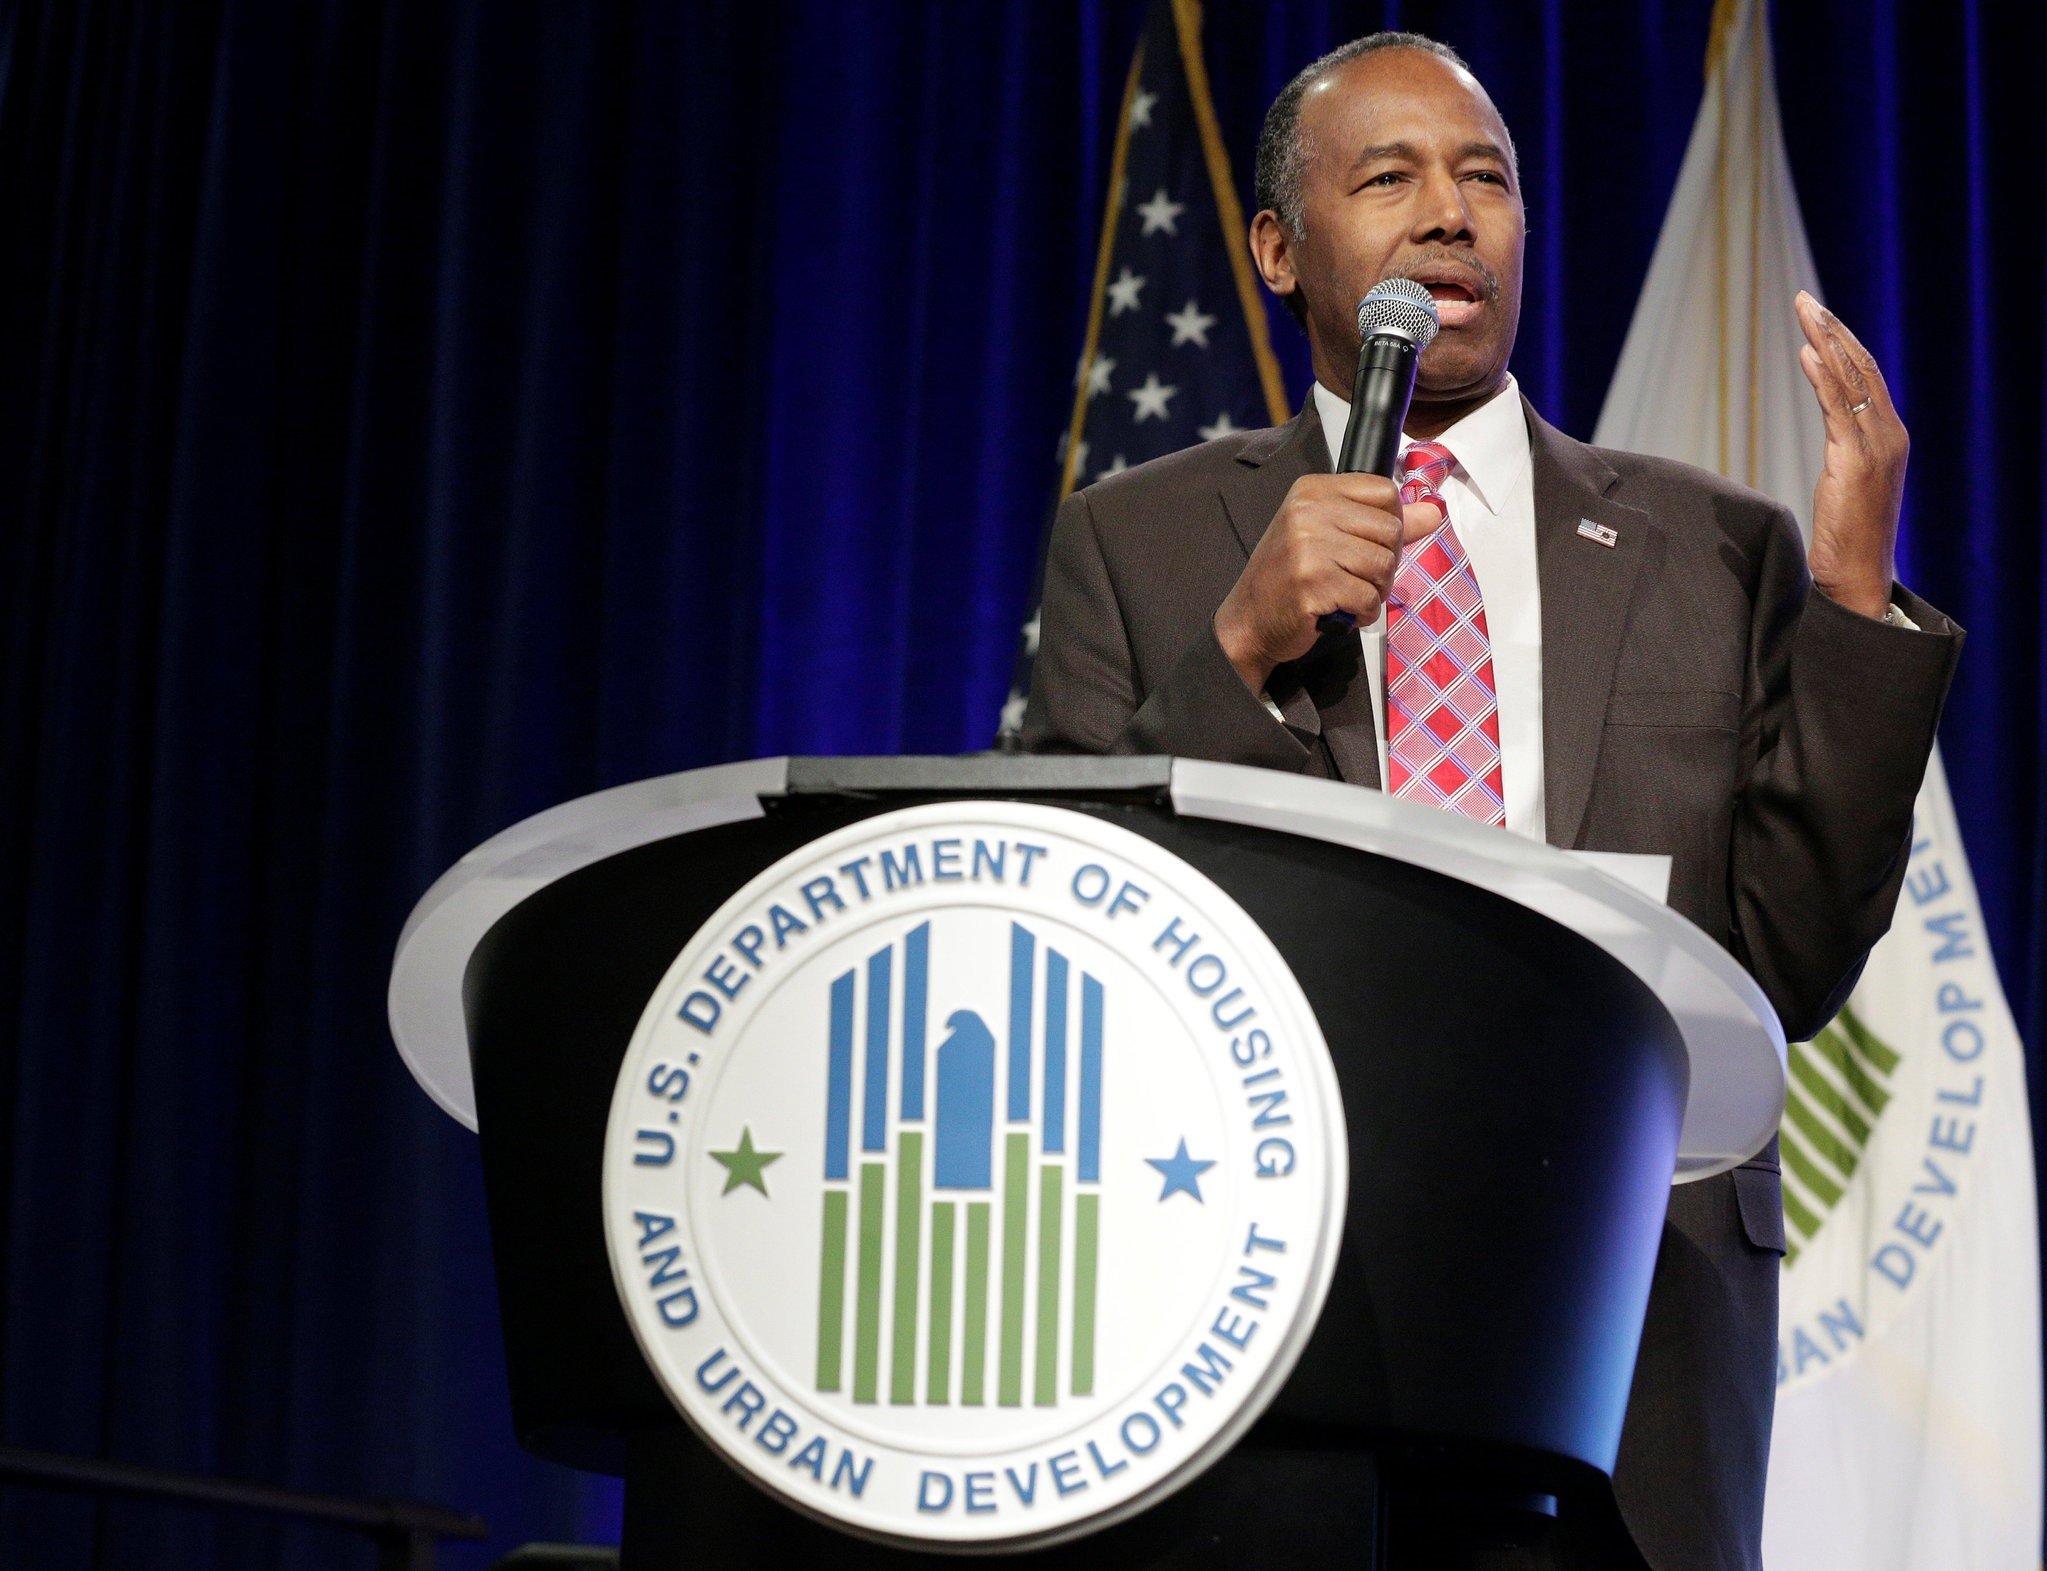 Secretary of Housing and Urban Development Ben Carson speaks to employees of the agency in Washington, U.S., March 6, 2017. (REUTERS Photo)